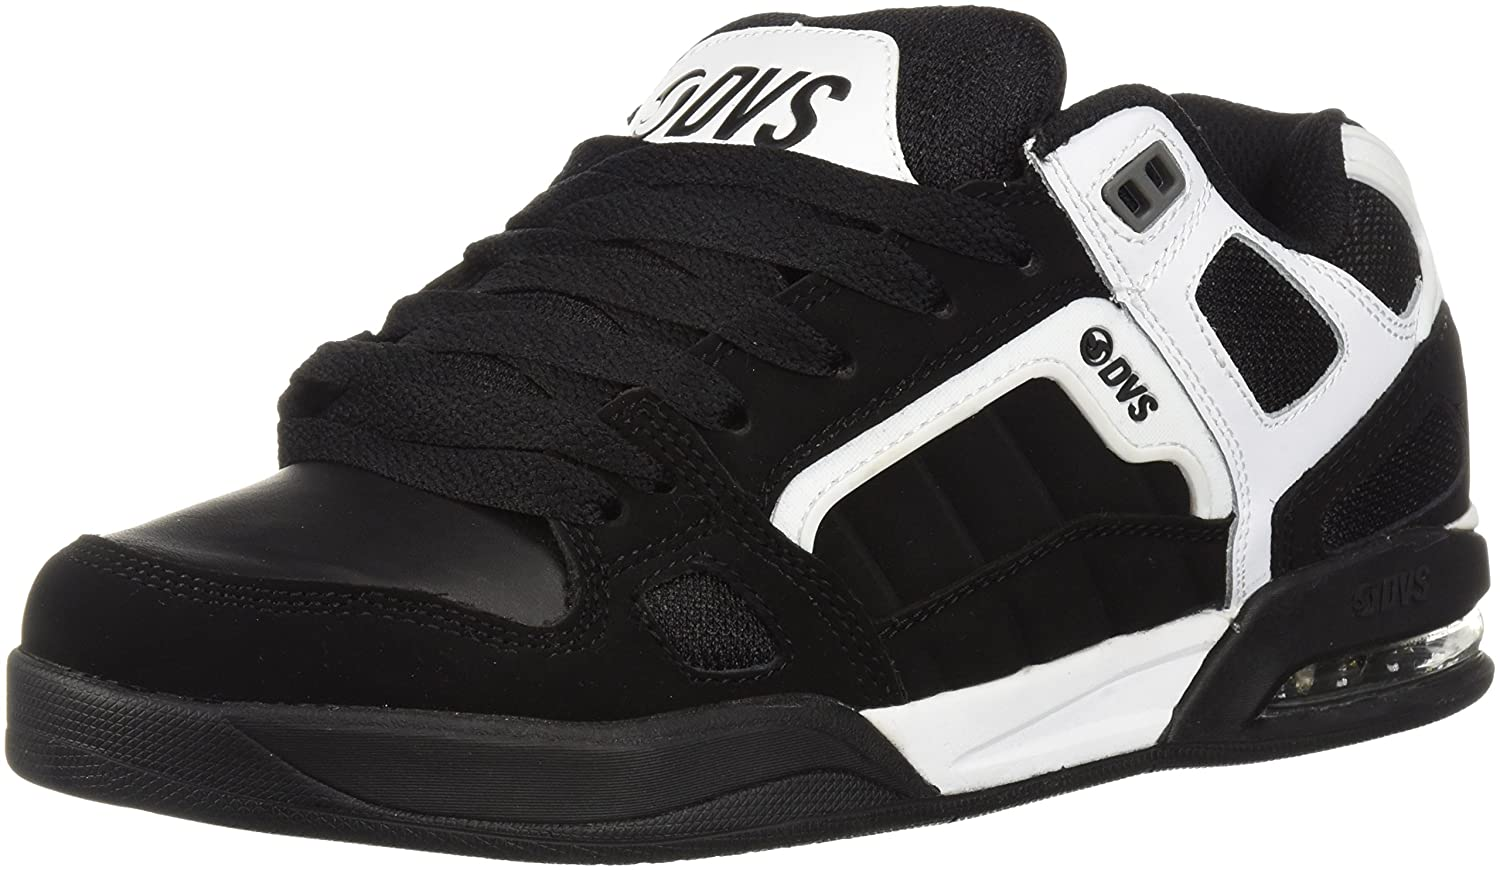 Dvs Footwear Mens Men's Drone+ Skate Shoe 7.5 M US|White/Black Nubuck